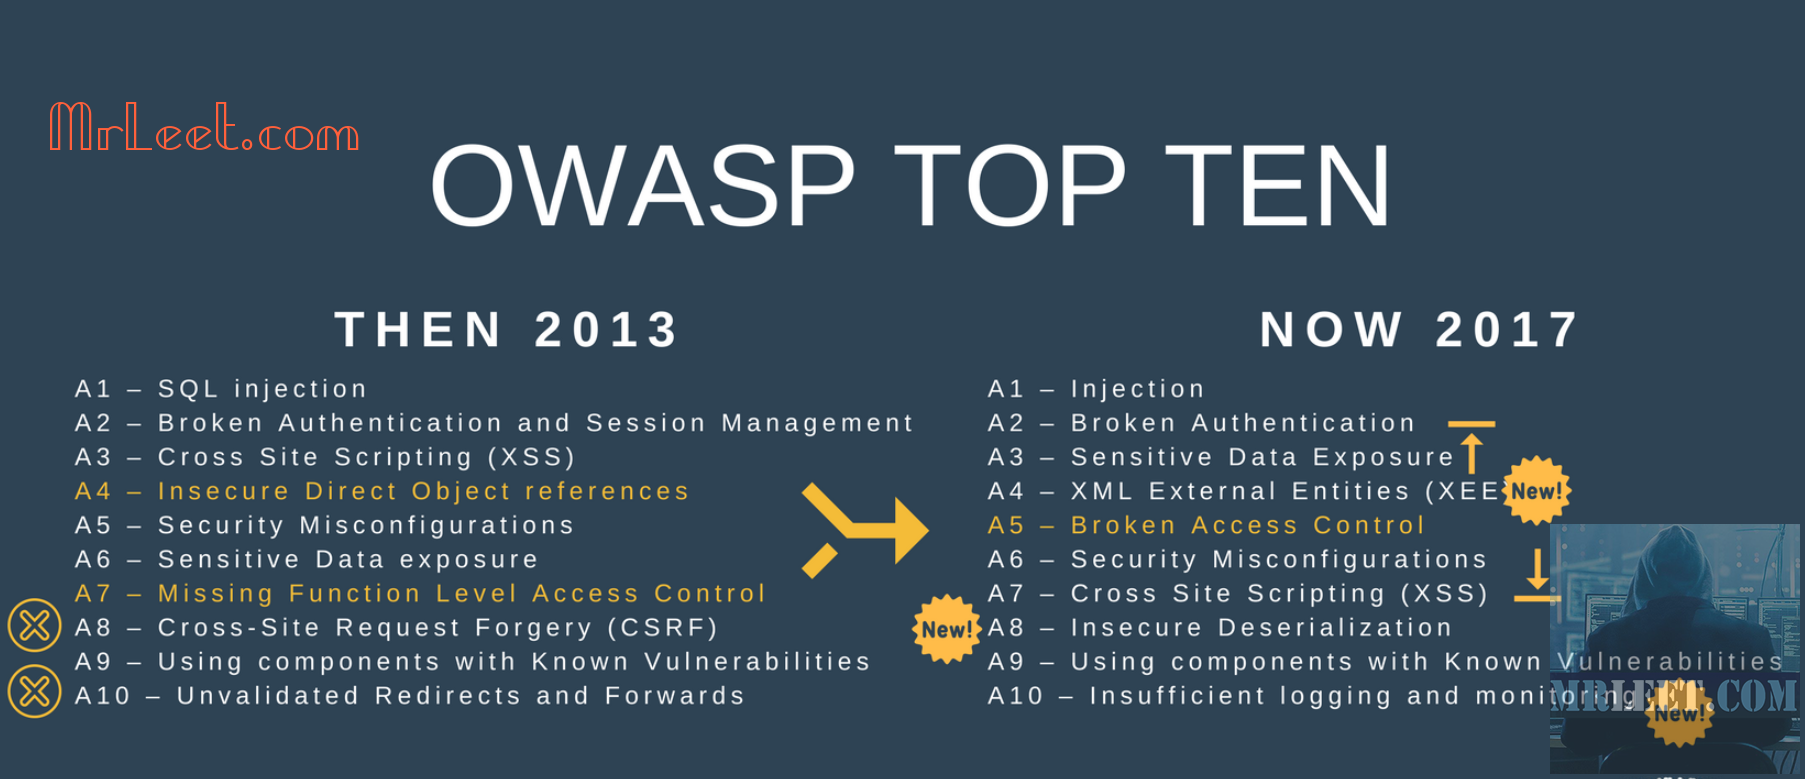 owasp top 10 2013 vs 2017 explained_1